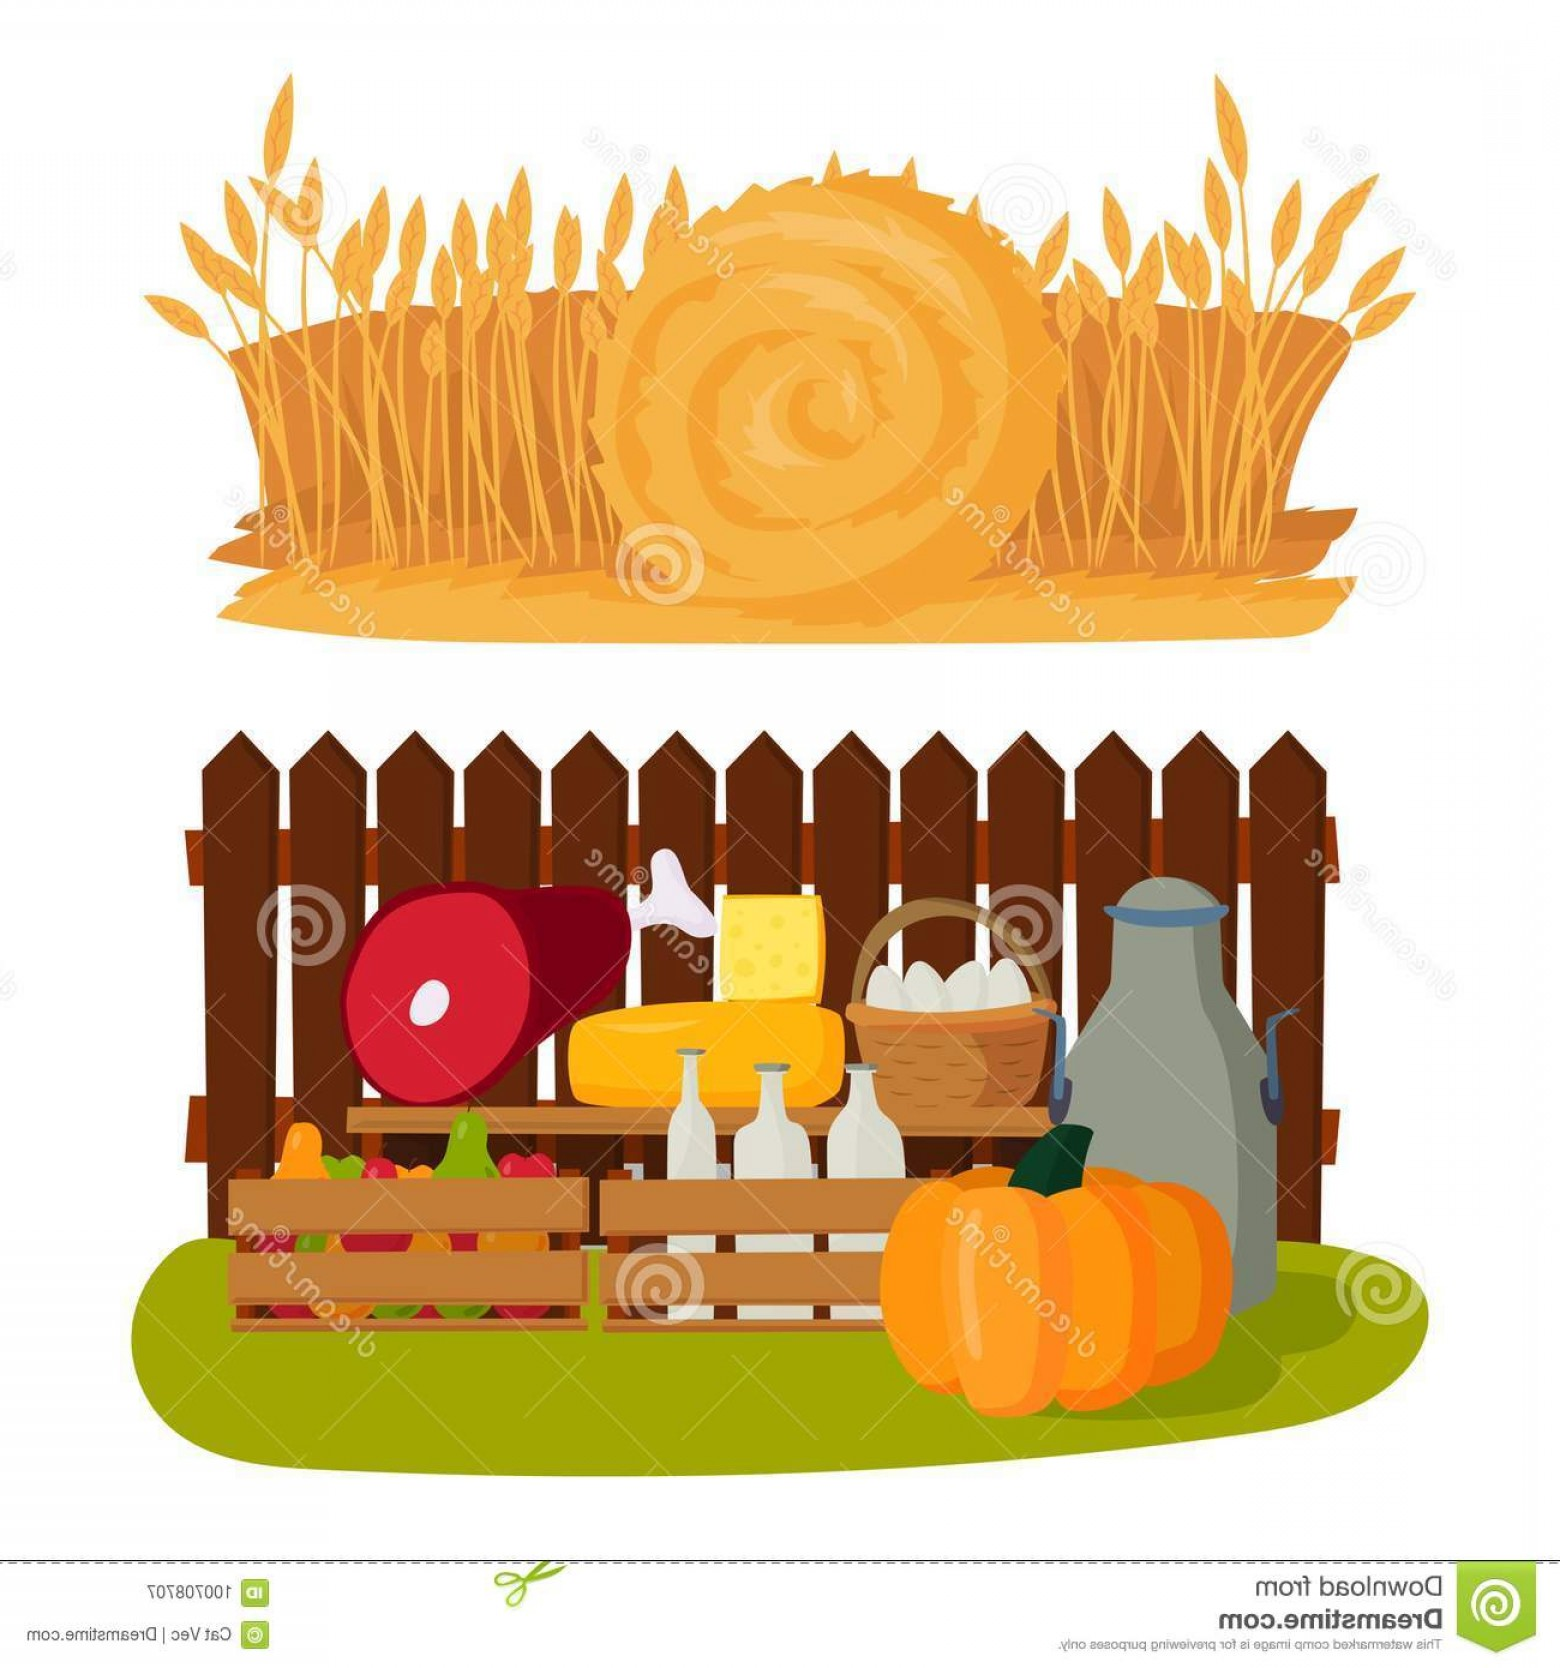 Farm Vector Illustration: Farm Vector Illustration Nature Food Harvesting Grain Agriculture Growth Cultivated Design Icon Different Harvest Modern Flat Image